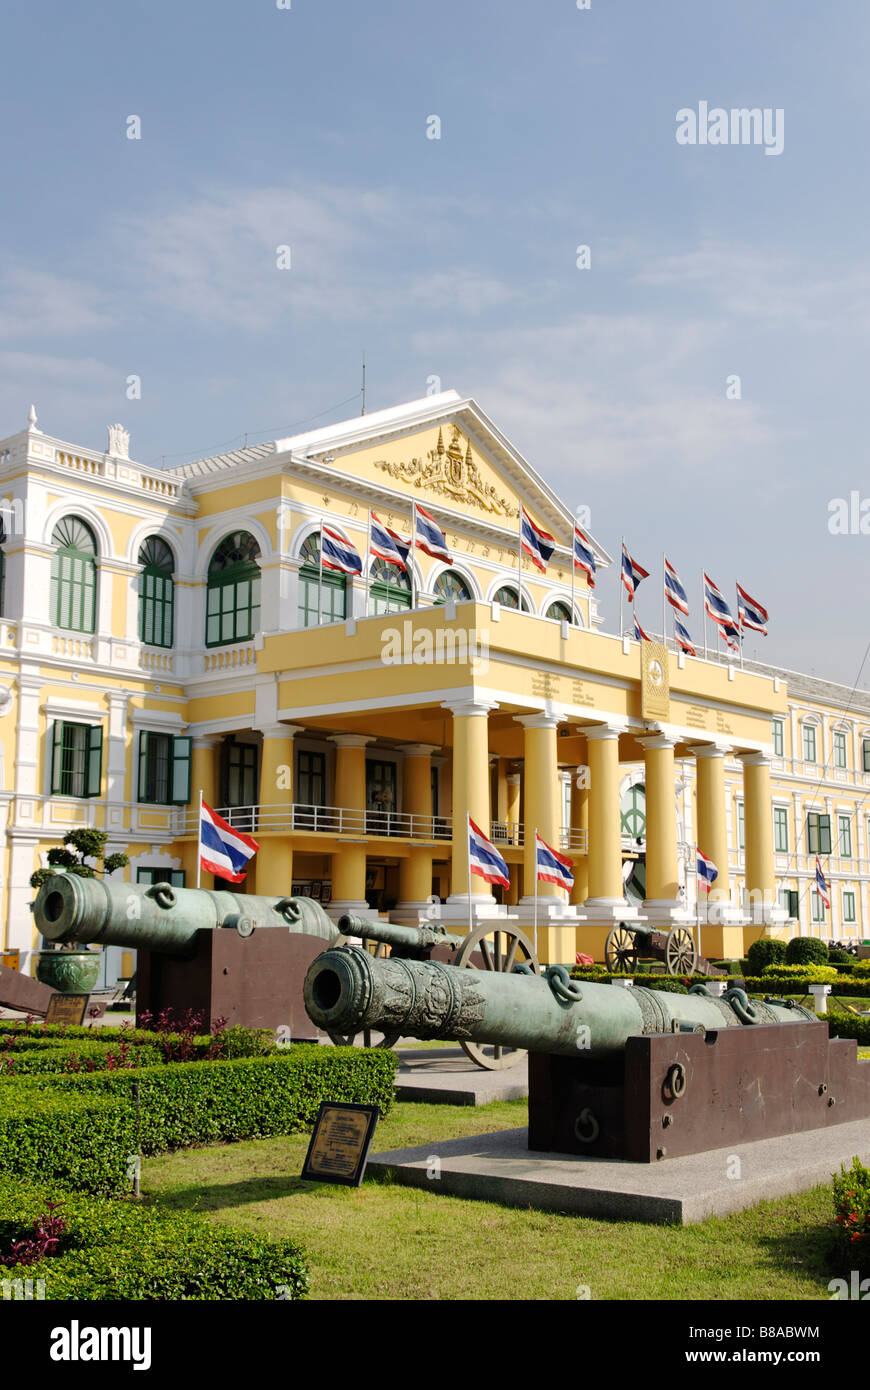 The Ministry of Defence building Phra Nakorn district in central Bangkok Thailand - Stock Image